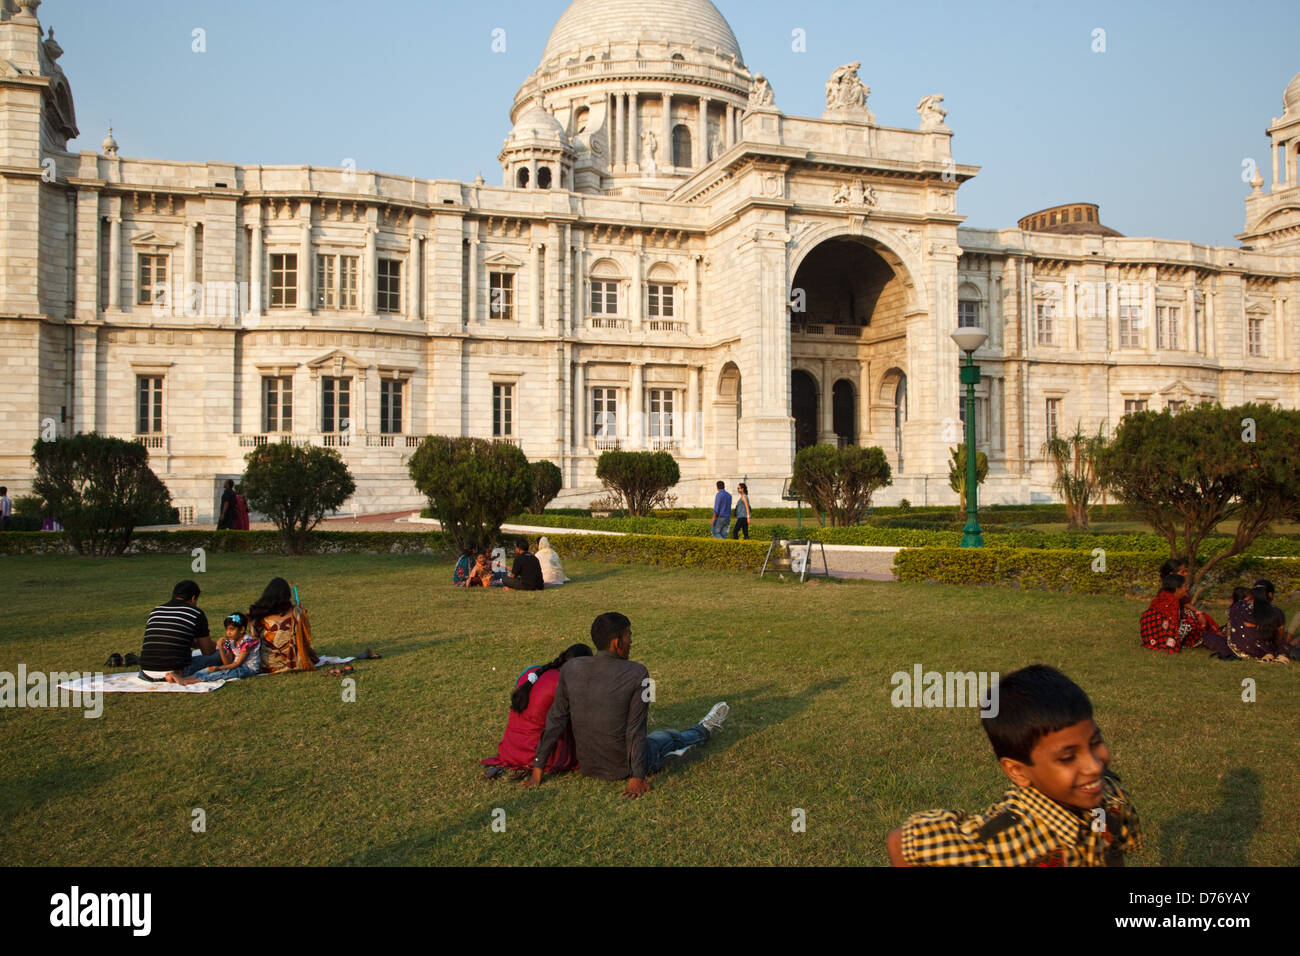 People on the lawn in front of Victoria Memorial in Kolkata, India. - Stock Image